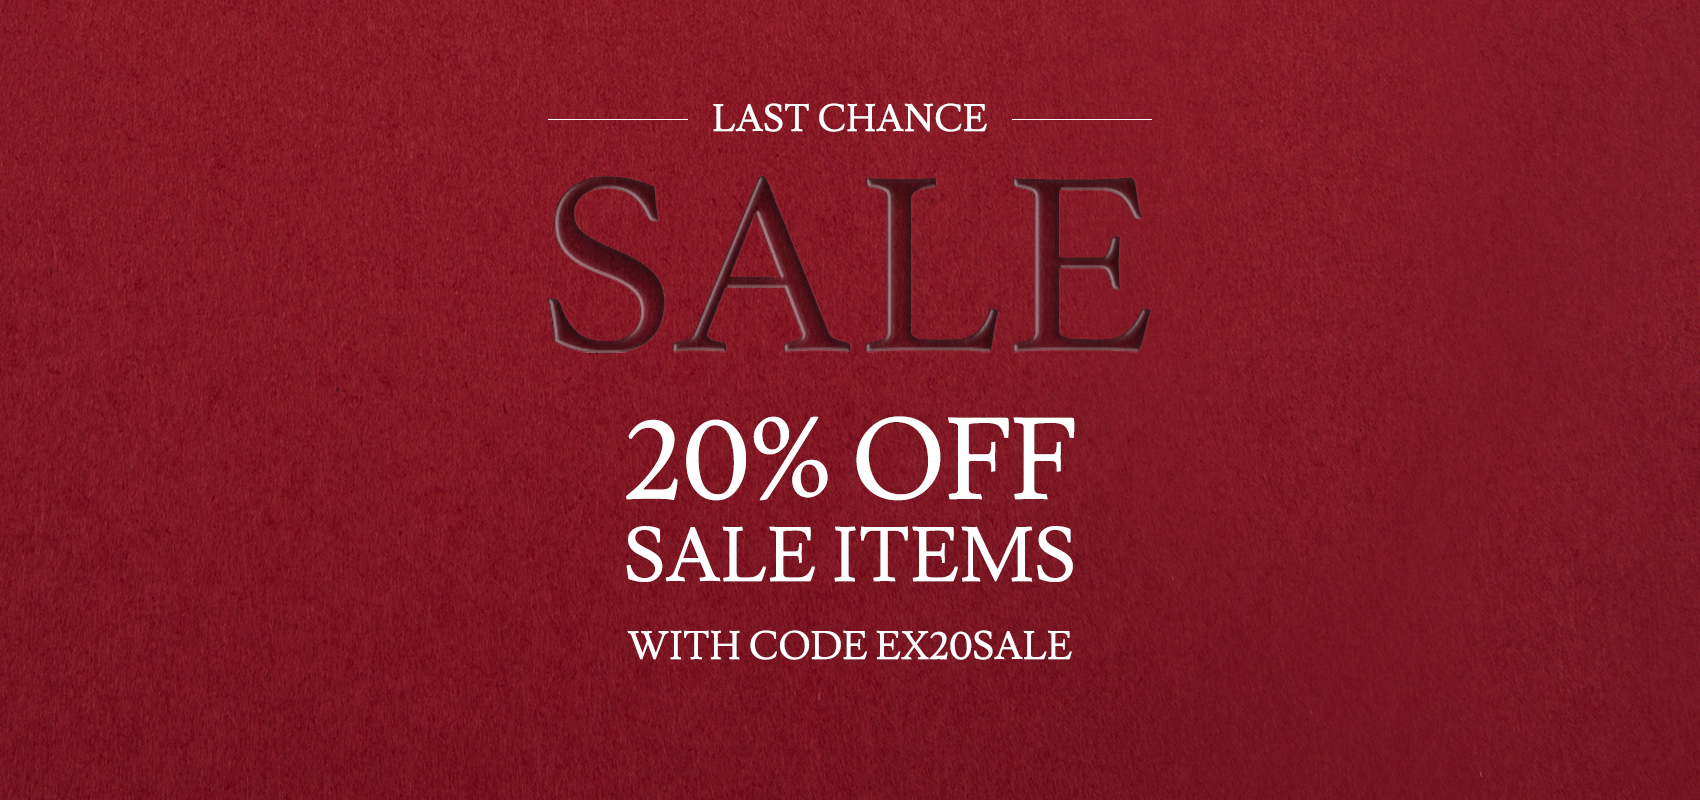 Last Chance Sale 20% off sale items with code EX20SALE